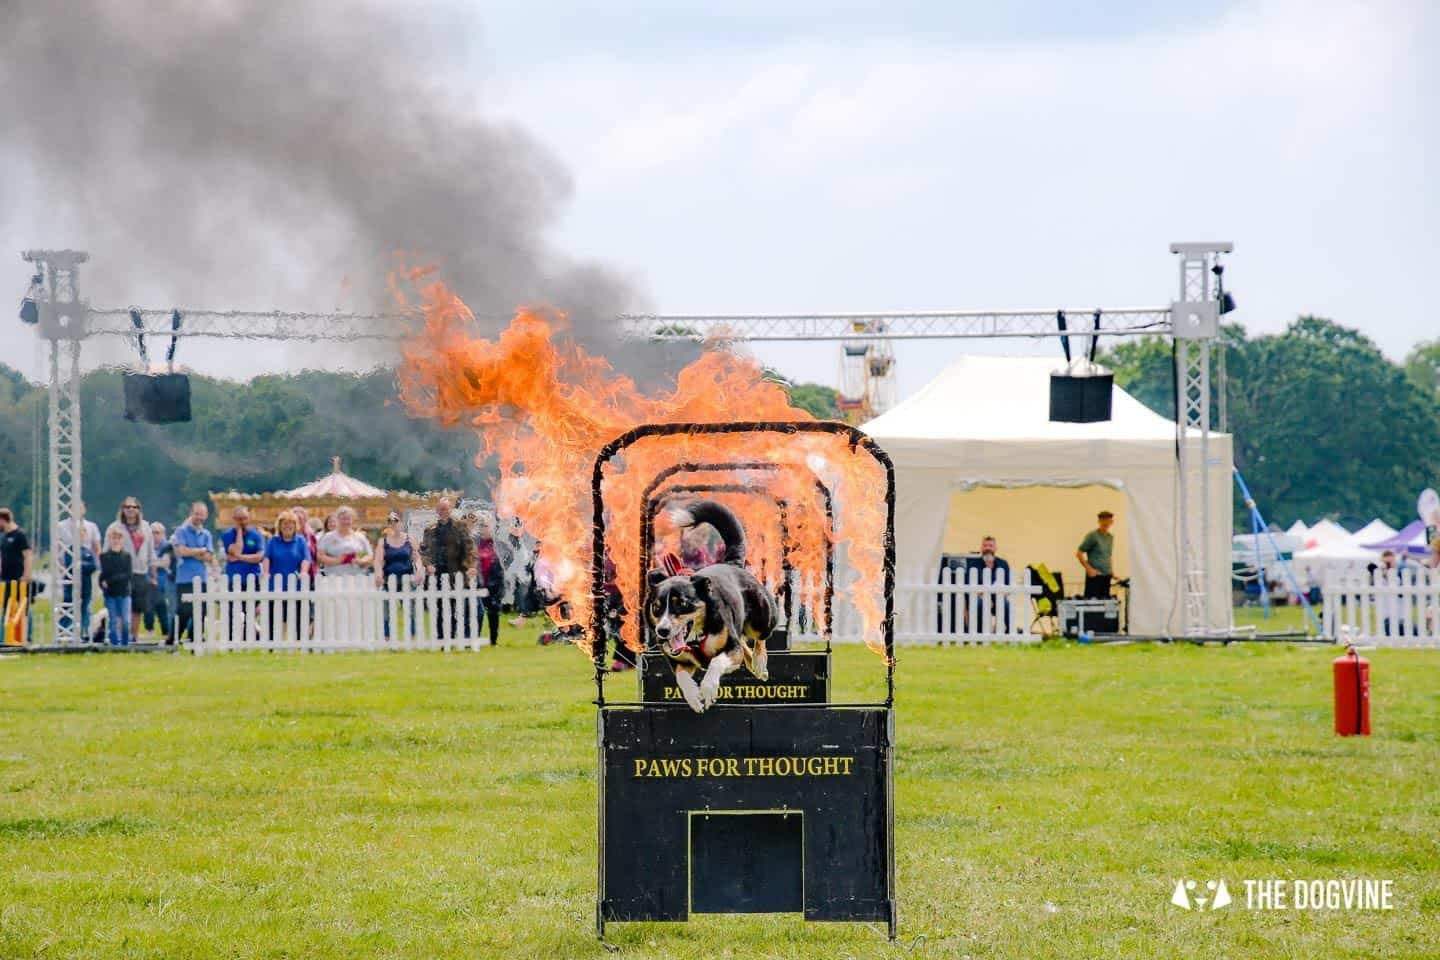 Dogstival New Forest Dog Festival Is A Barking Success - Paws for Thought Dog Display Team 2